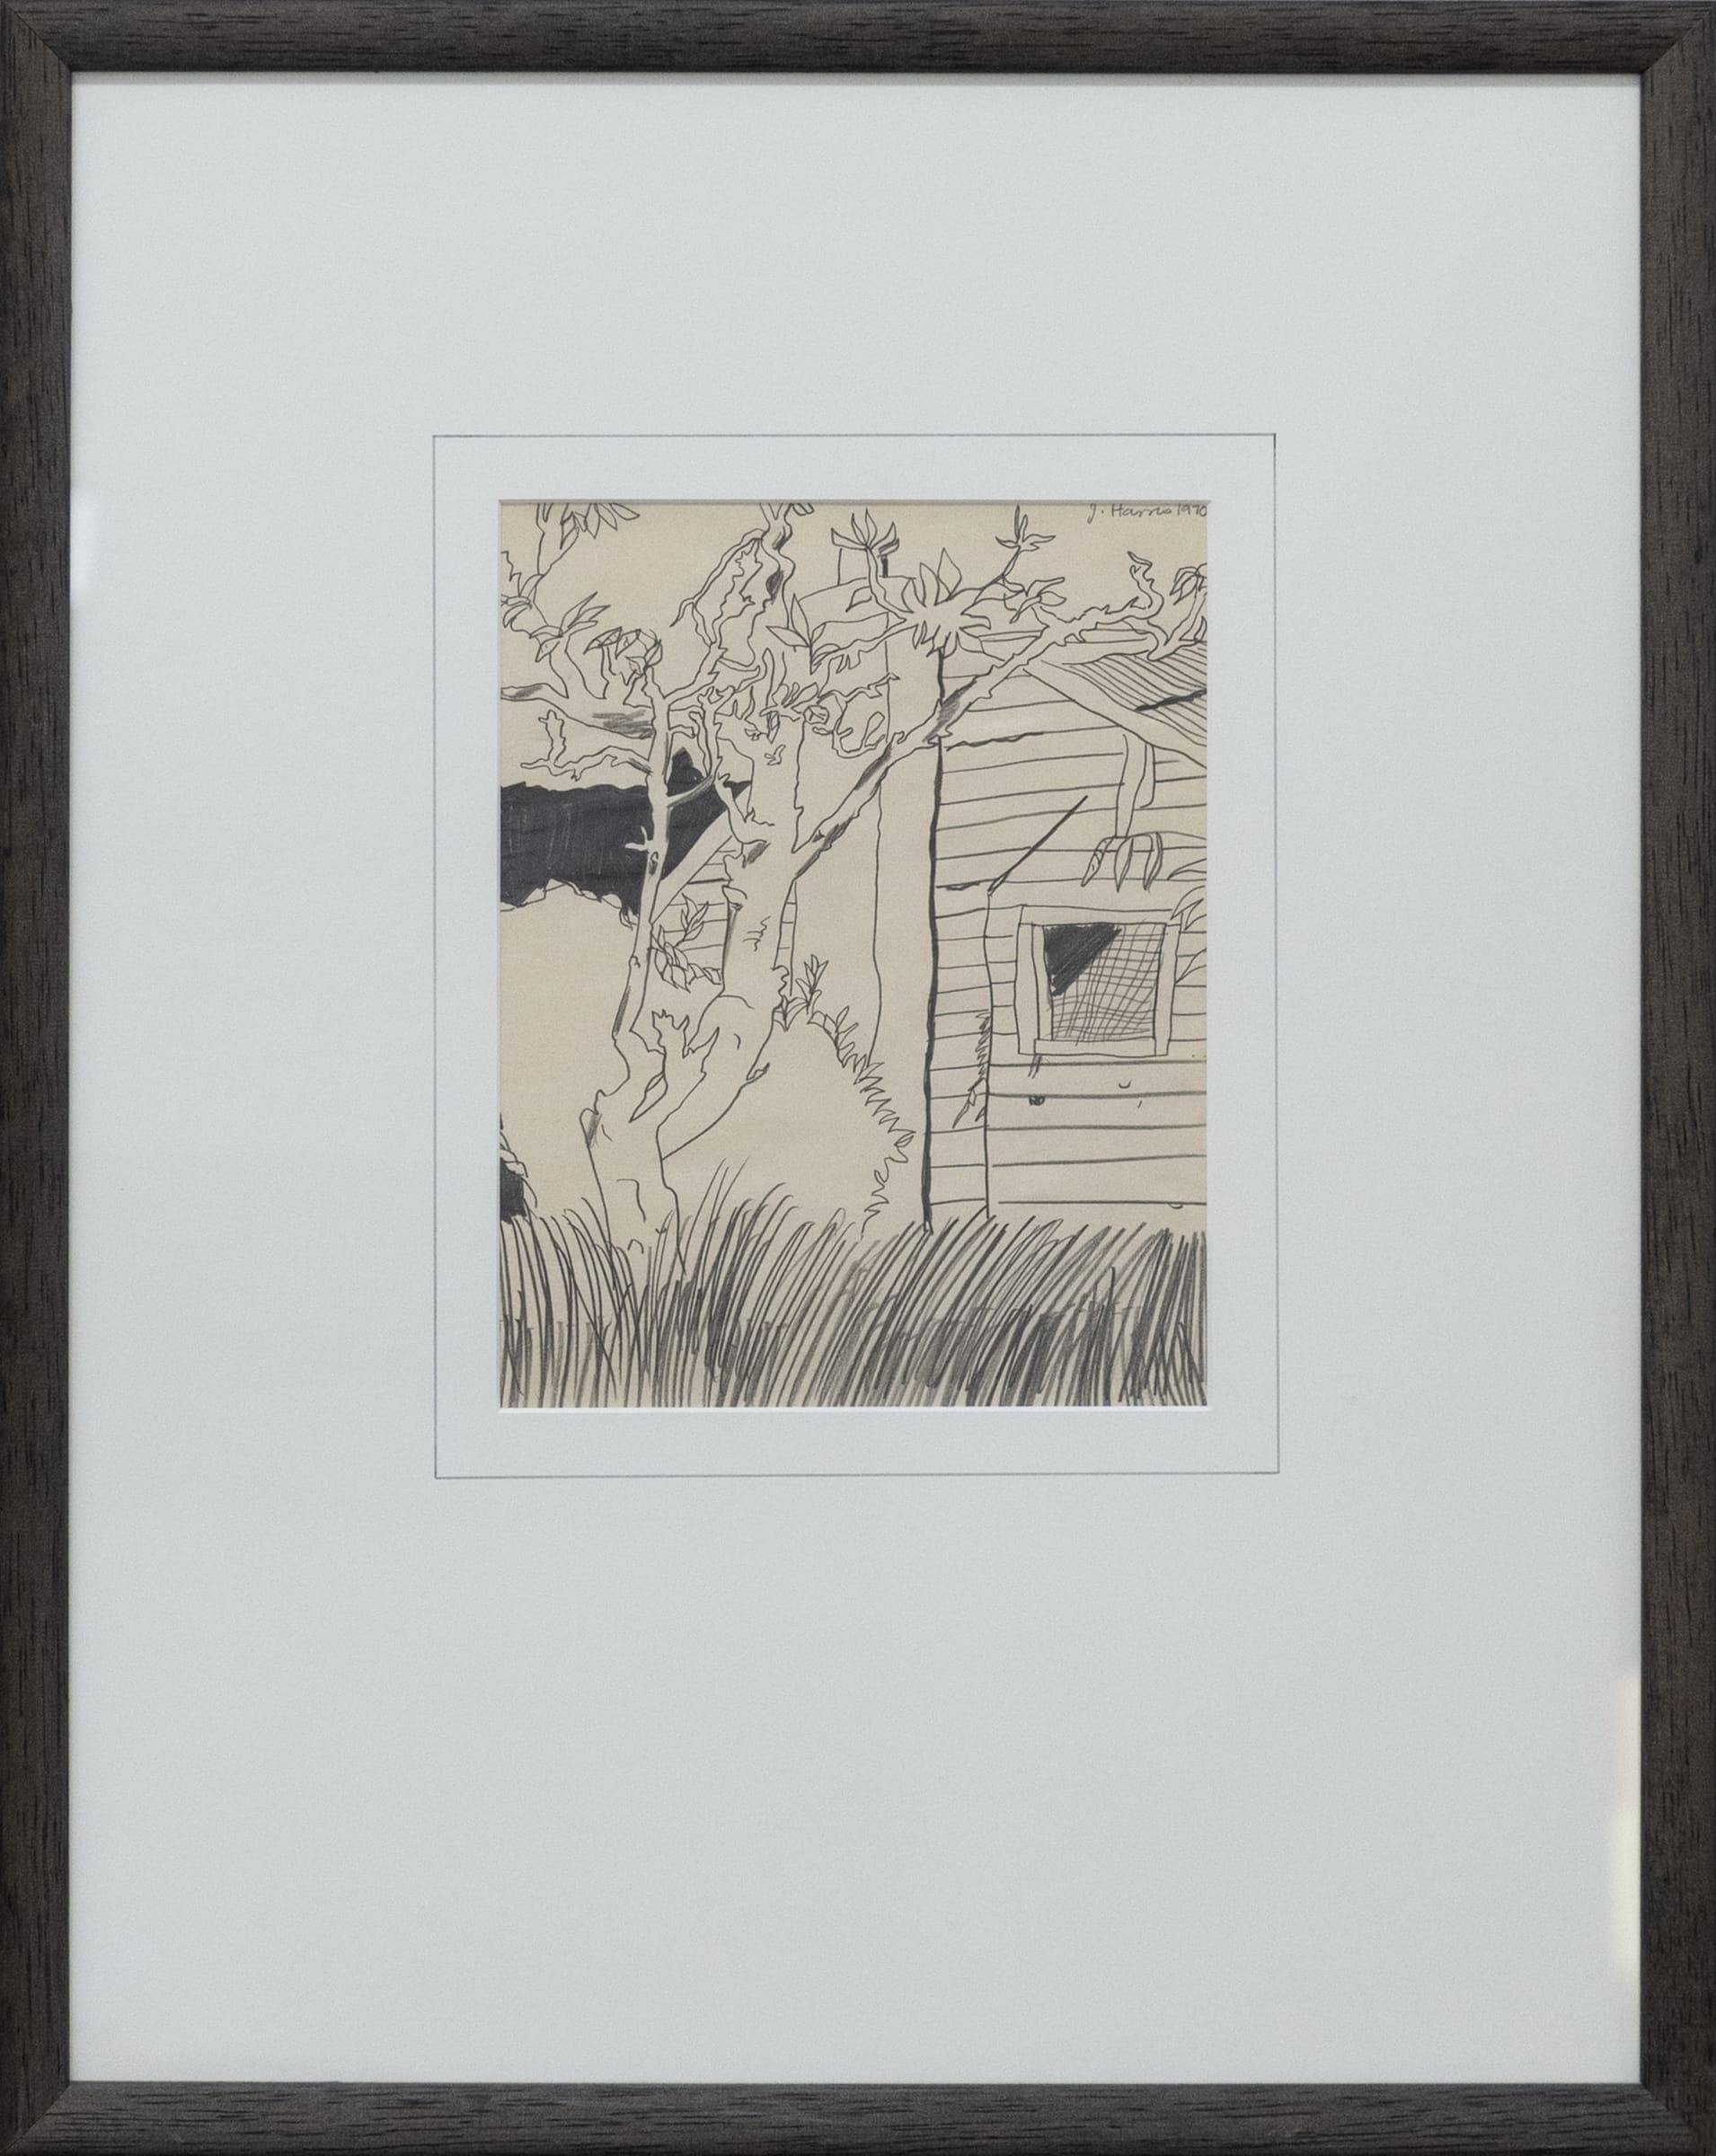 <span class=&#34;link fancybox-details-link&#34;><a href=&#34;/exhibitions/75/works/artworks219/&#34;>View Detail Page</a></span><div class=&#34;signed_and_dated&#34;>Signed and dated upper right</div> <div class=&#34;medium&#34;>Pencil on paper</div> <div class=&#34;dimensions&#34;>590mm x 470mm (framed)</div>